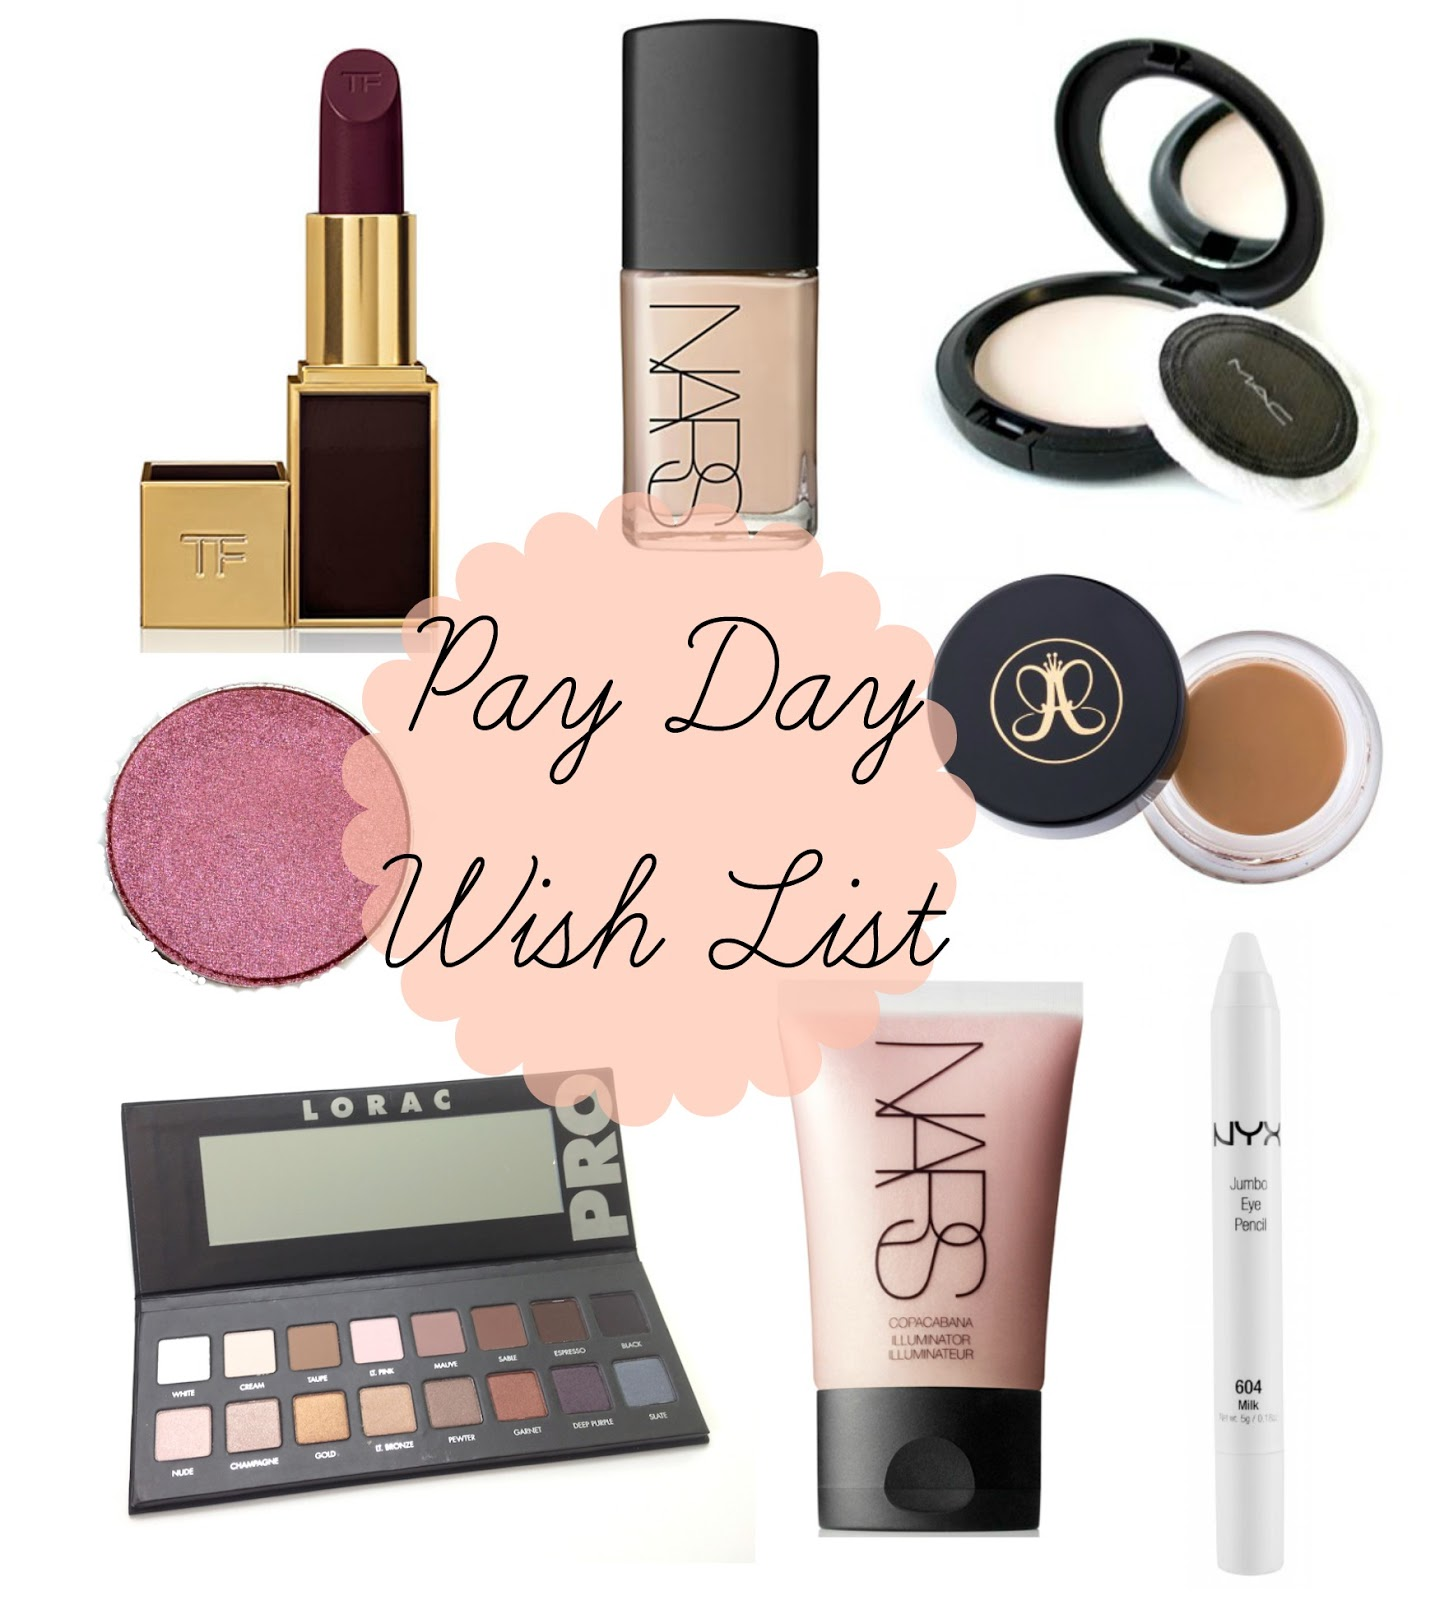 Pay Day Wish List, Beauty Wish List